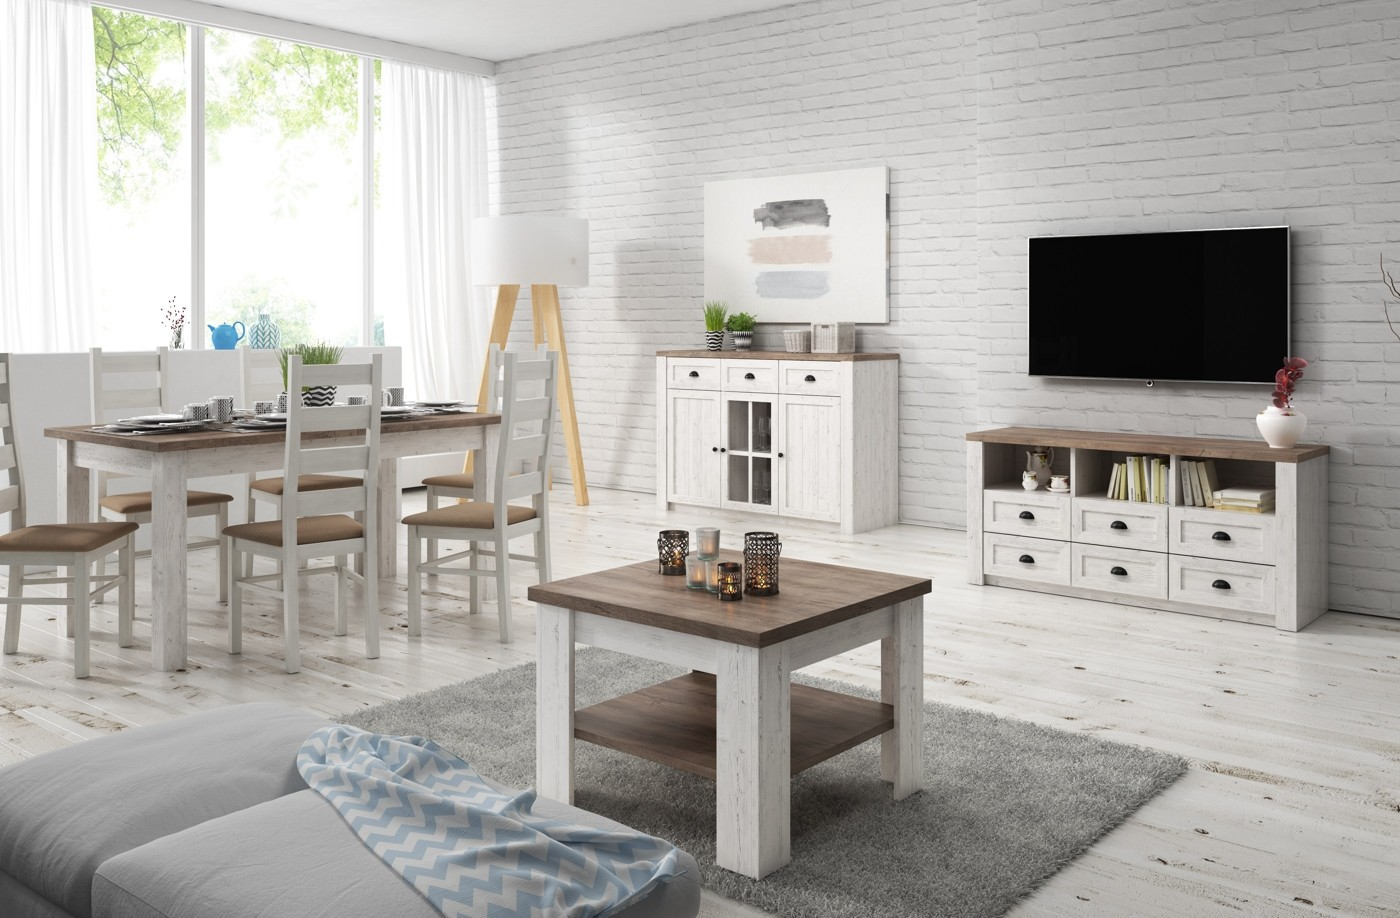 Woonkamer parello 1 wit eiken complete kamers meubella for Woonkamer wit